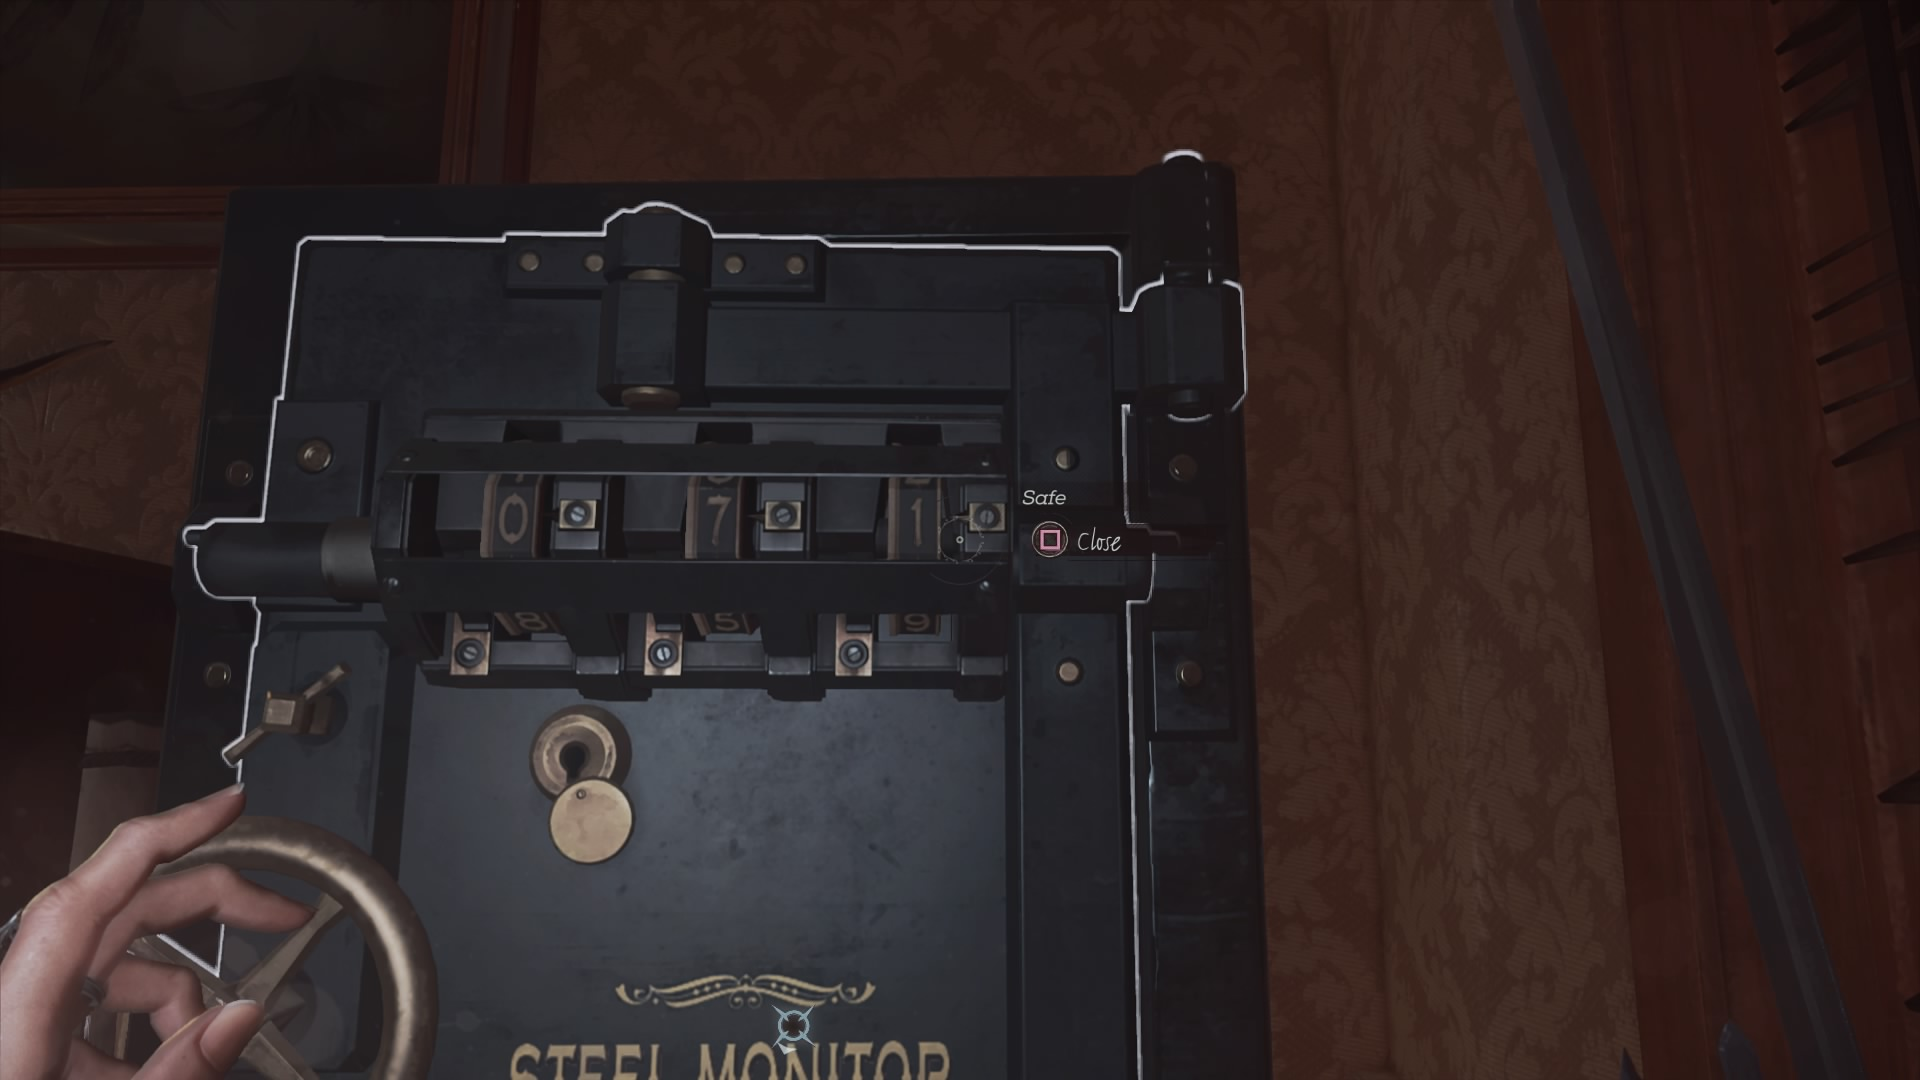 Dishonored  Second Safe Room Key